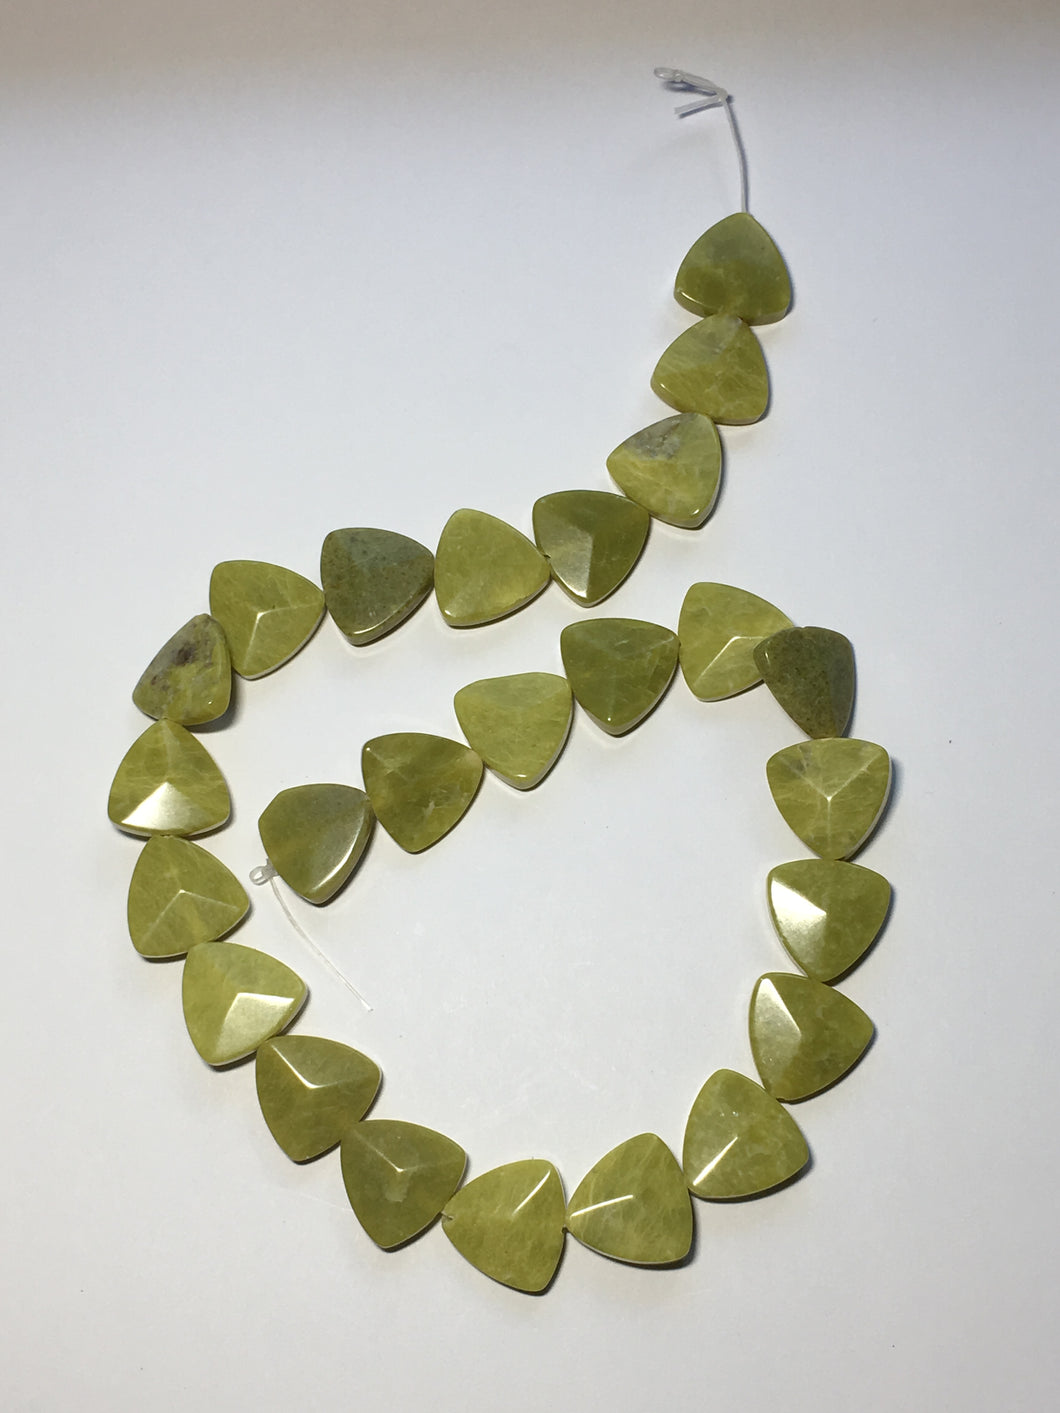 Olive Green Lace Agate Rounded Triangle Faceted Semi-Precious Stone, 17 mm - 25 Beads